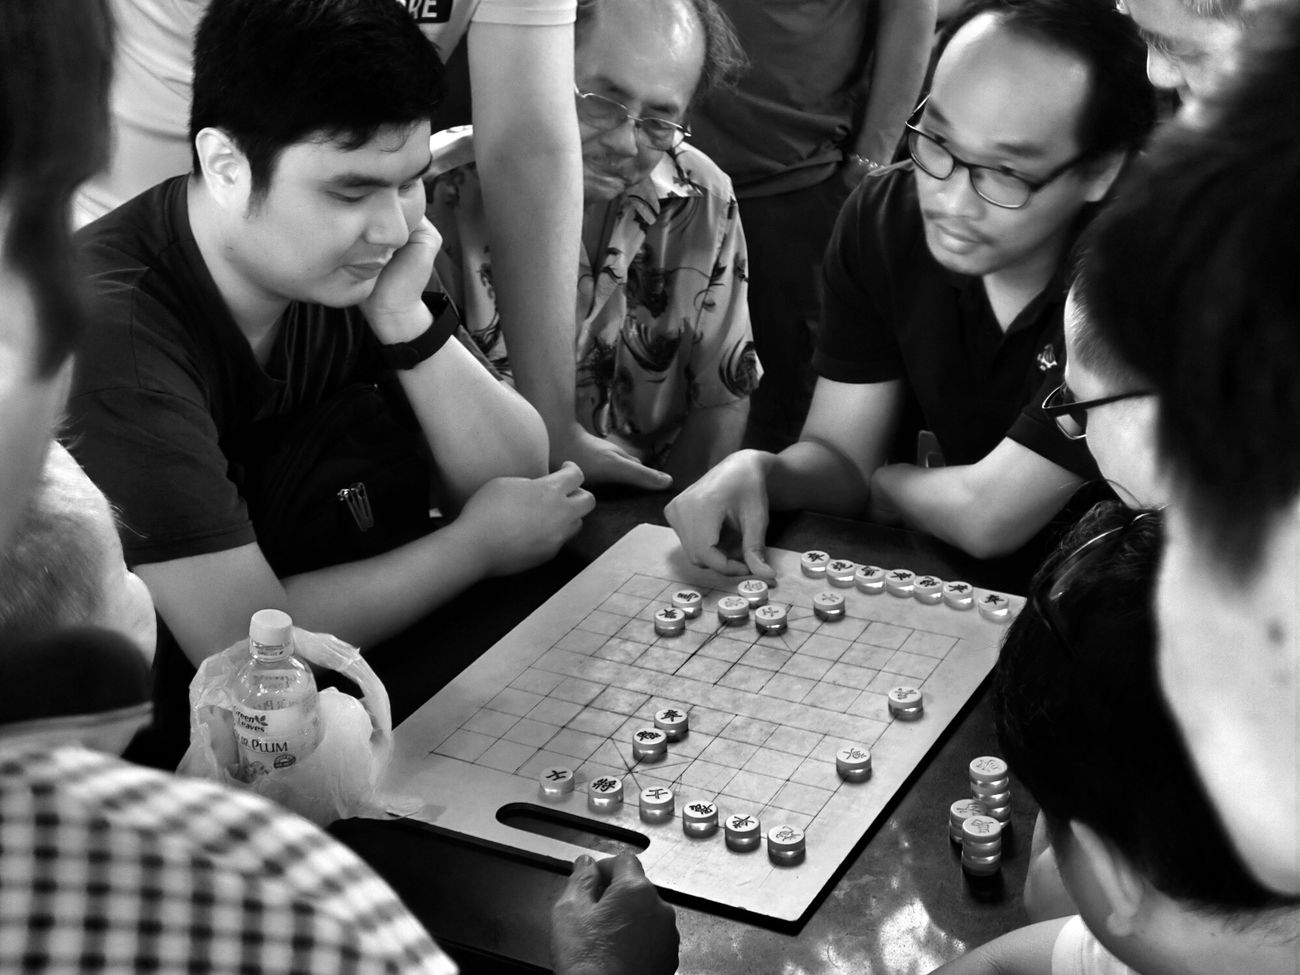 Checkers Monochrome Blackandwhite Black And White Black & White Streetphoto_bw Street Photography Streetphotography EyeEmChinatownPhotowalk